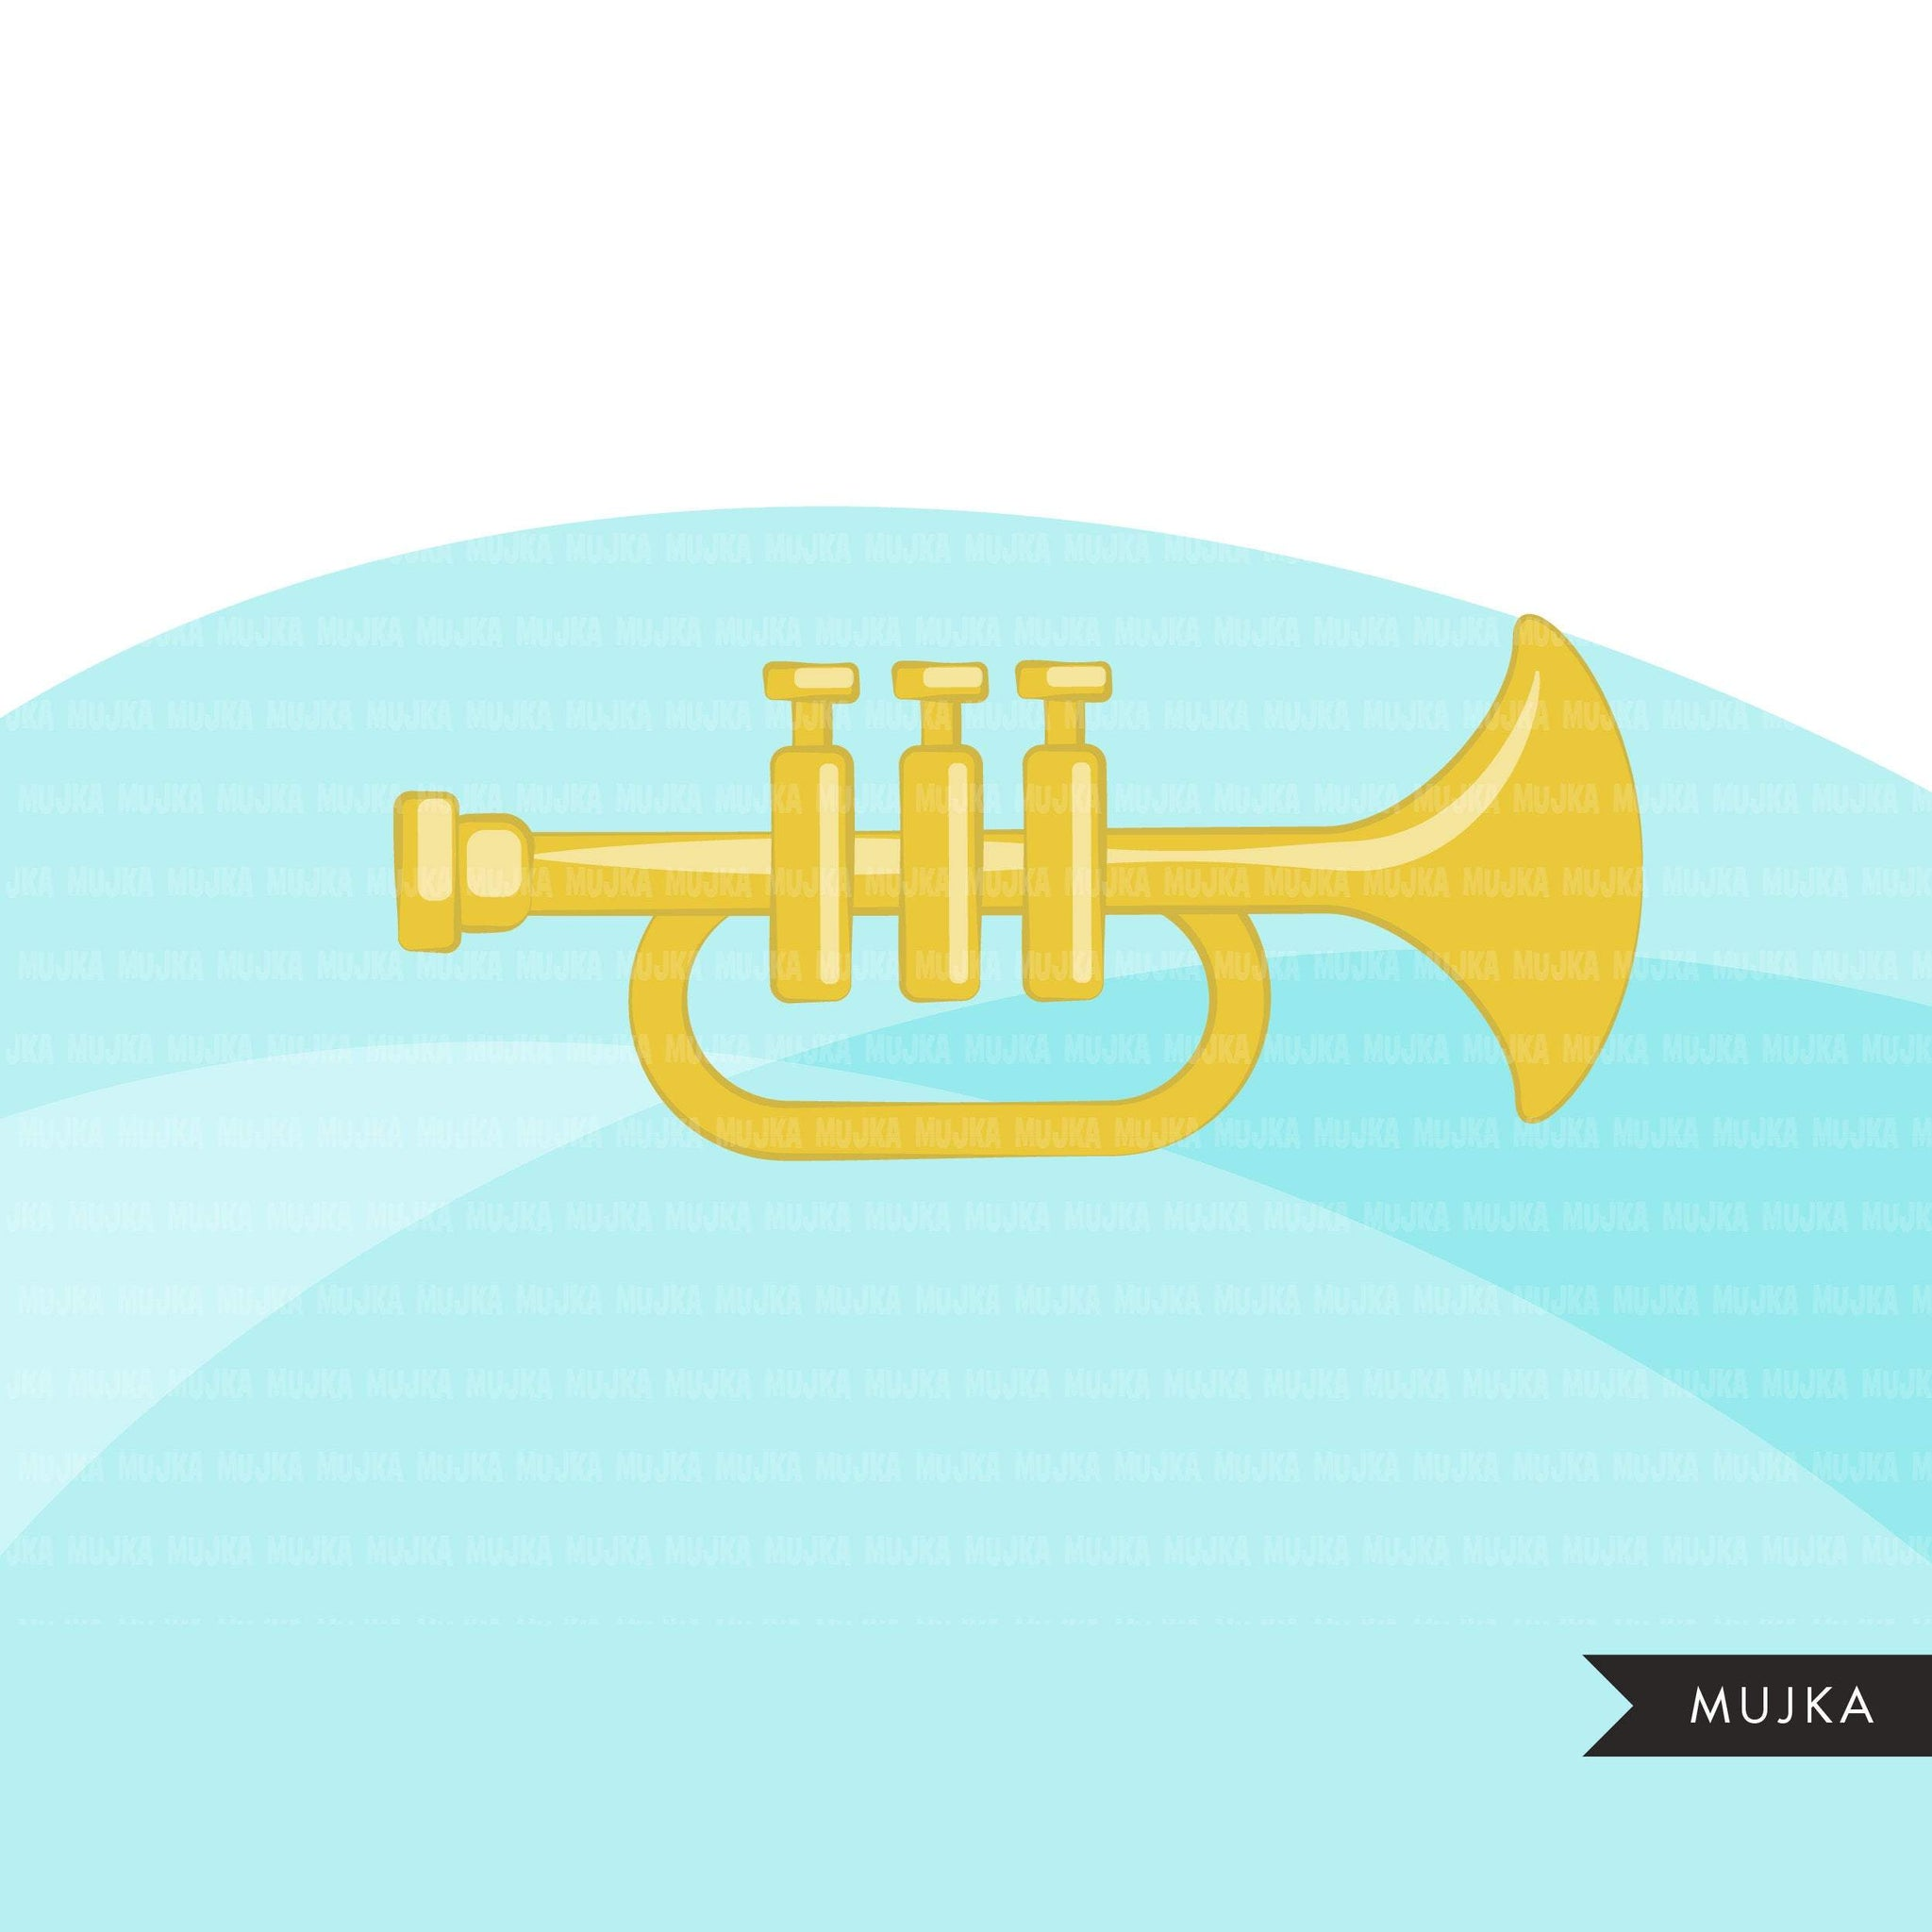 Trumpet clipart, Music Instruments clipart, education graphics, school band, musician sublimation graphics, PNG clip art